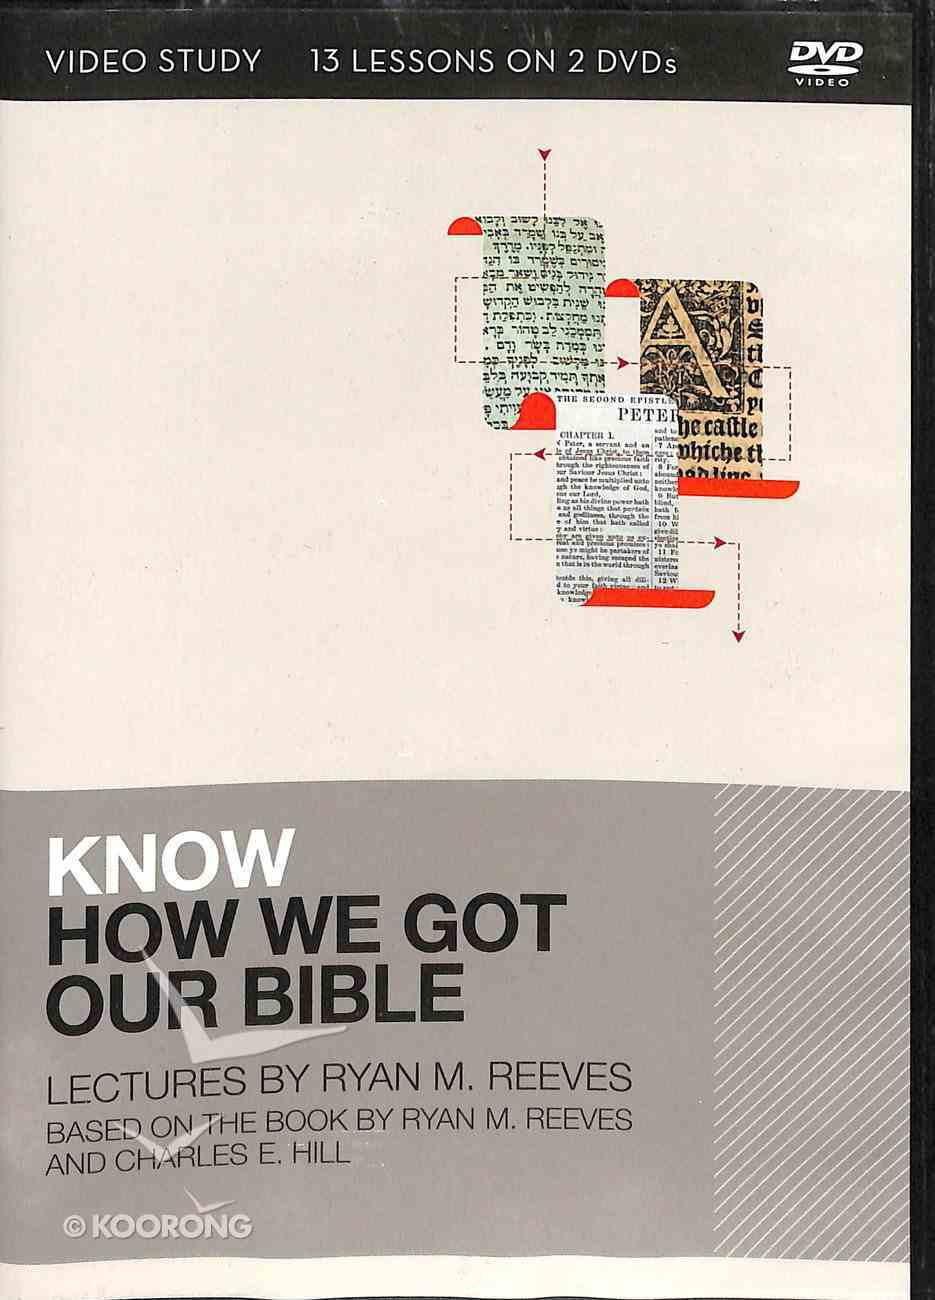 Know How We Got Our Bible: 11 Lessons on 2 DVDS (Video Study) DVD